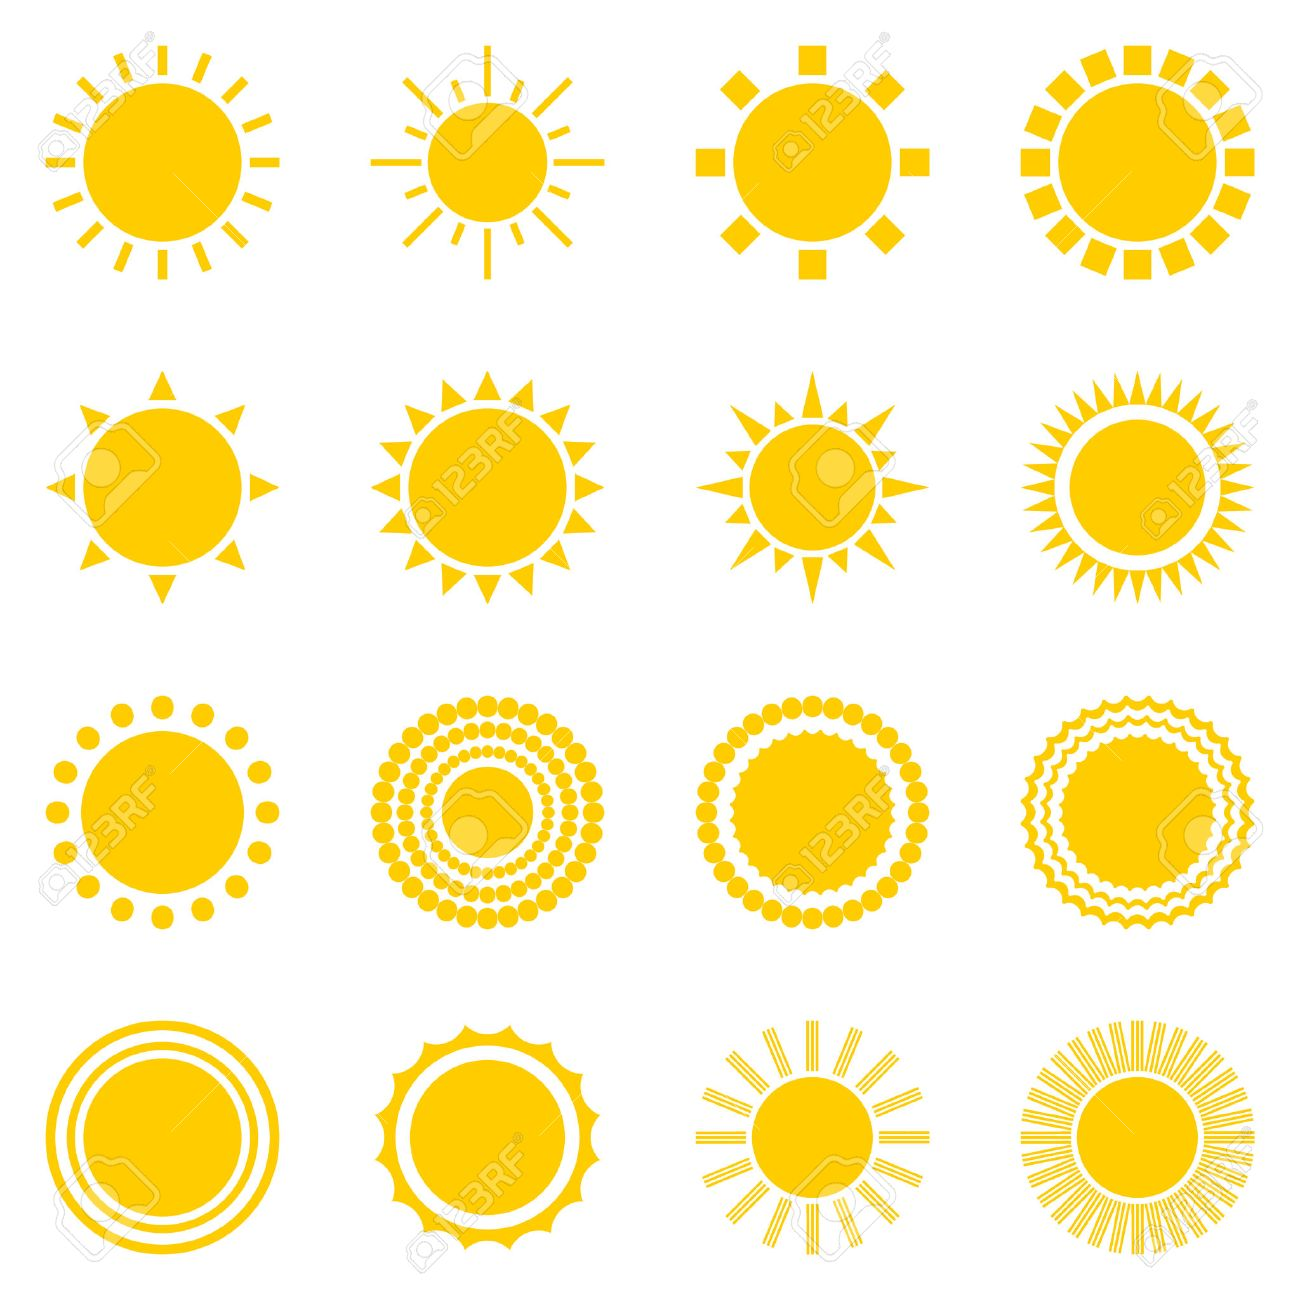 set of sun icons isolated on white background. Creative yellow sunlight symbols. Elements for weather forecast design. Solar system. Sunrise And sunset. Editable items. Flat design graphic. Vector - 50591008